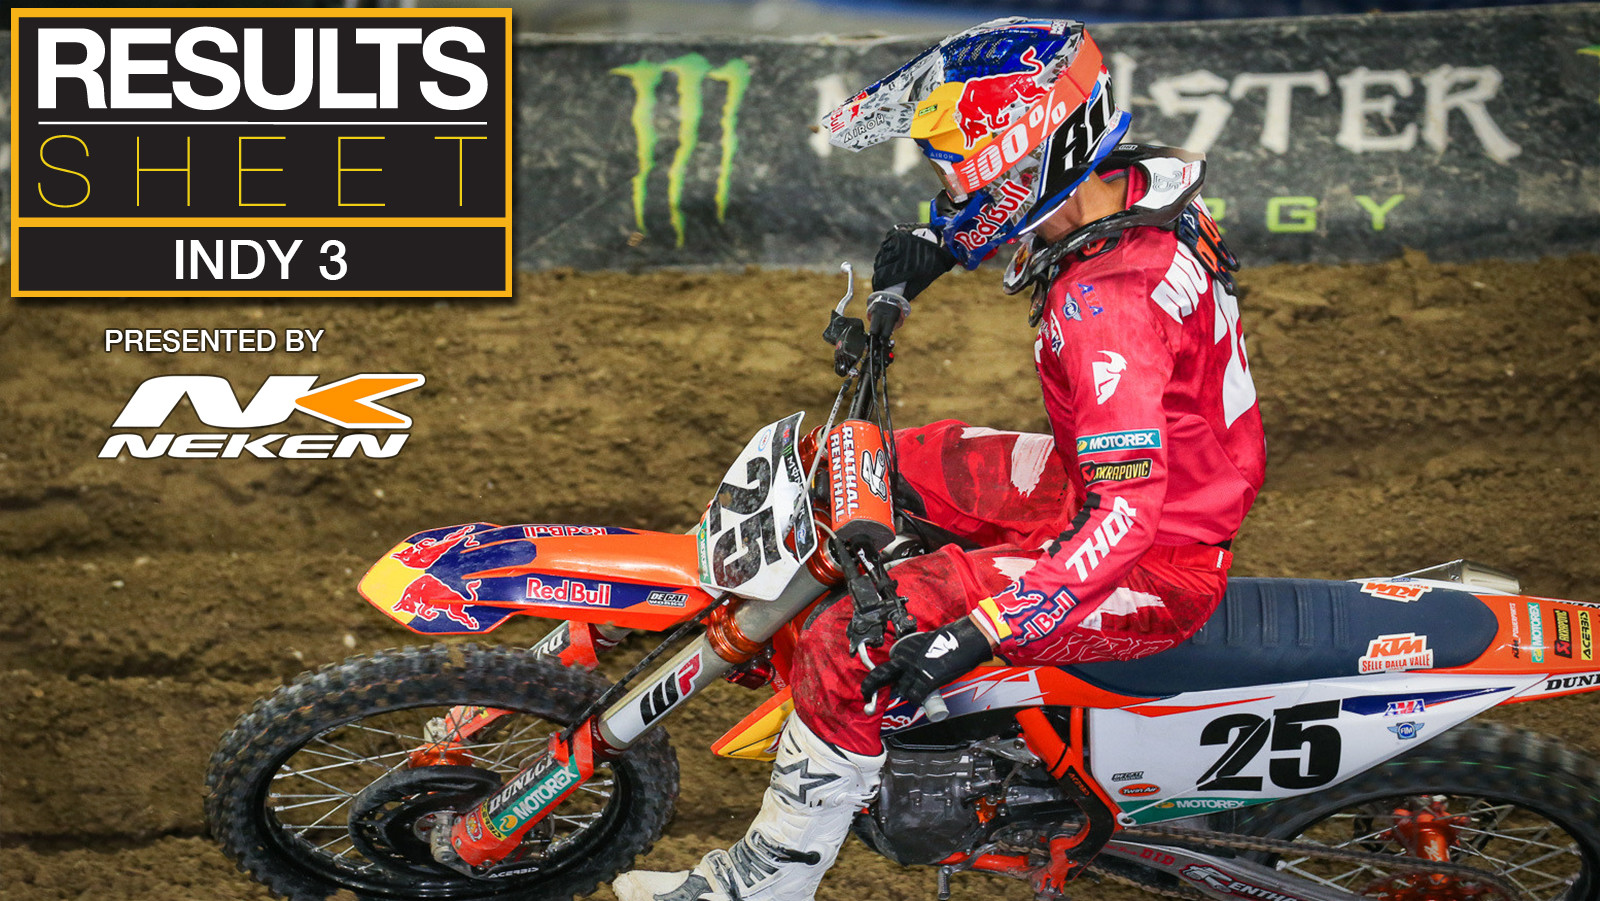 Results Sheet: 2021 Indianapolis 3 Supercross